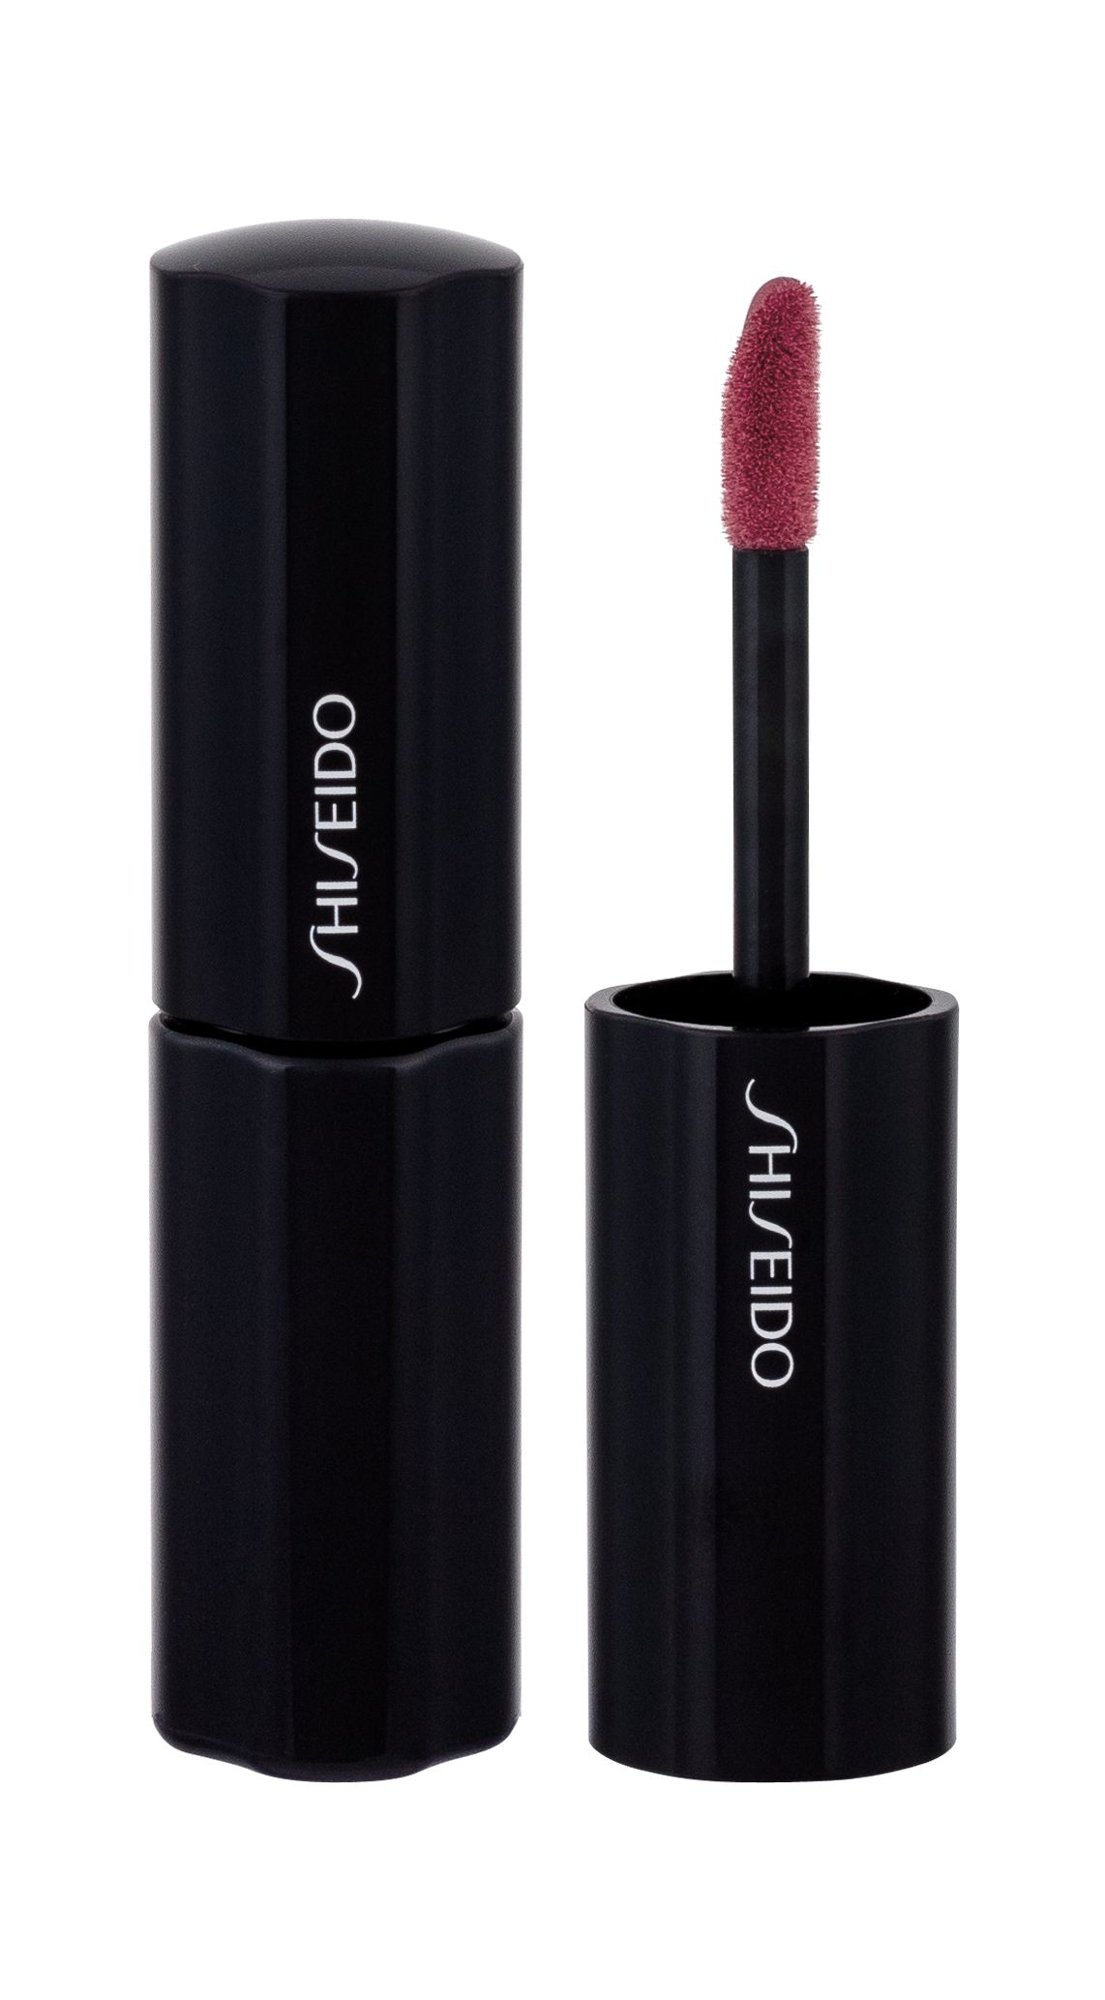 Shiseido Lacquer Rouge Lipstick 6ml RS723